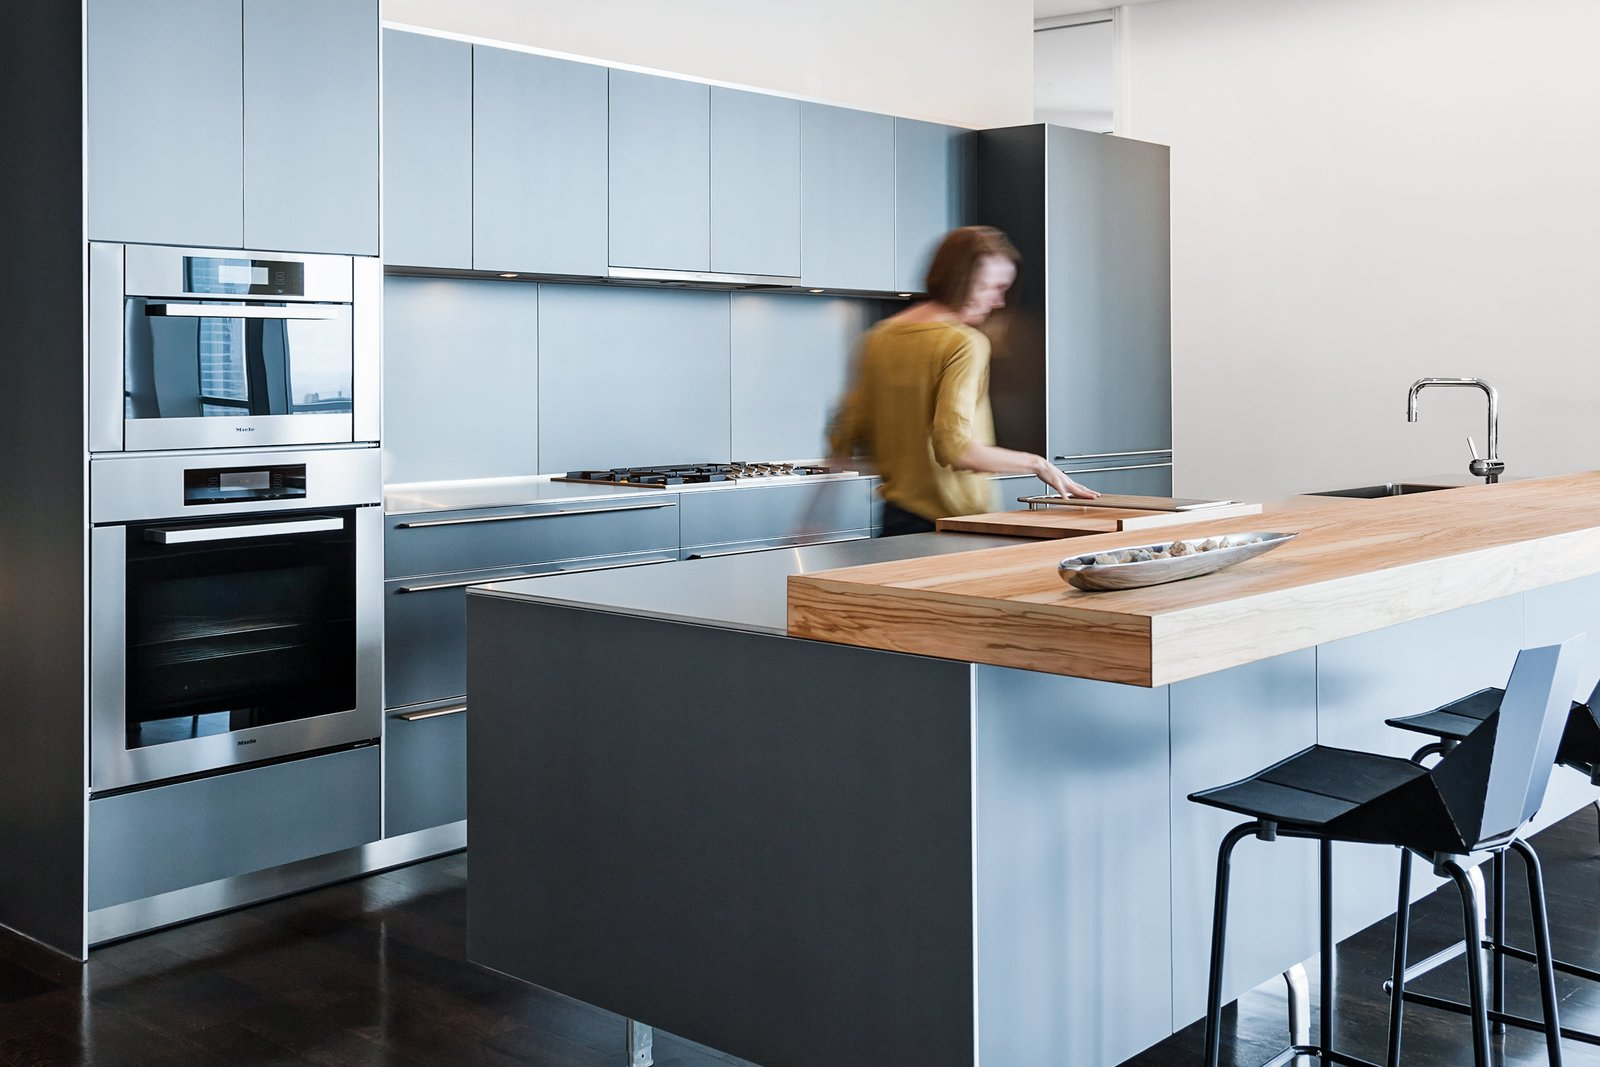 Kitchen, Wood Counter, and Wall Oven  Best Photos from interiors